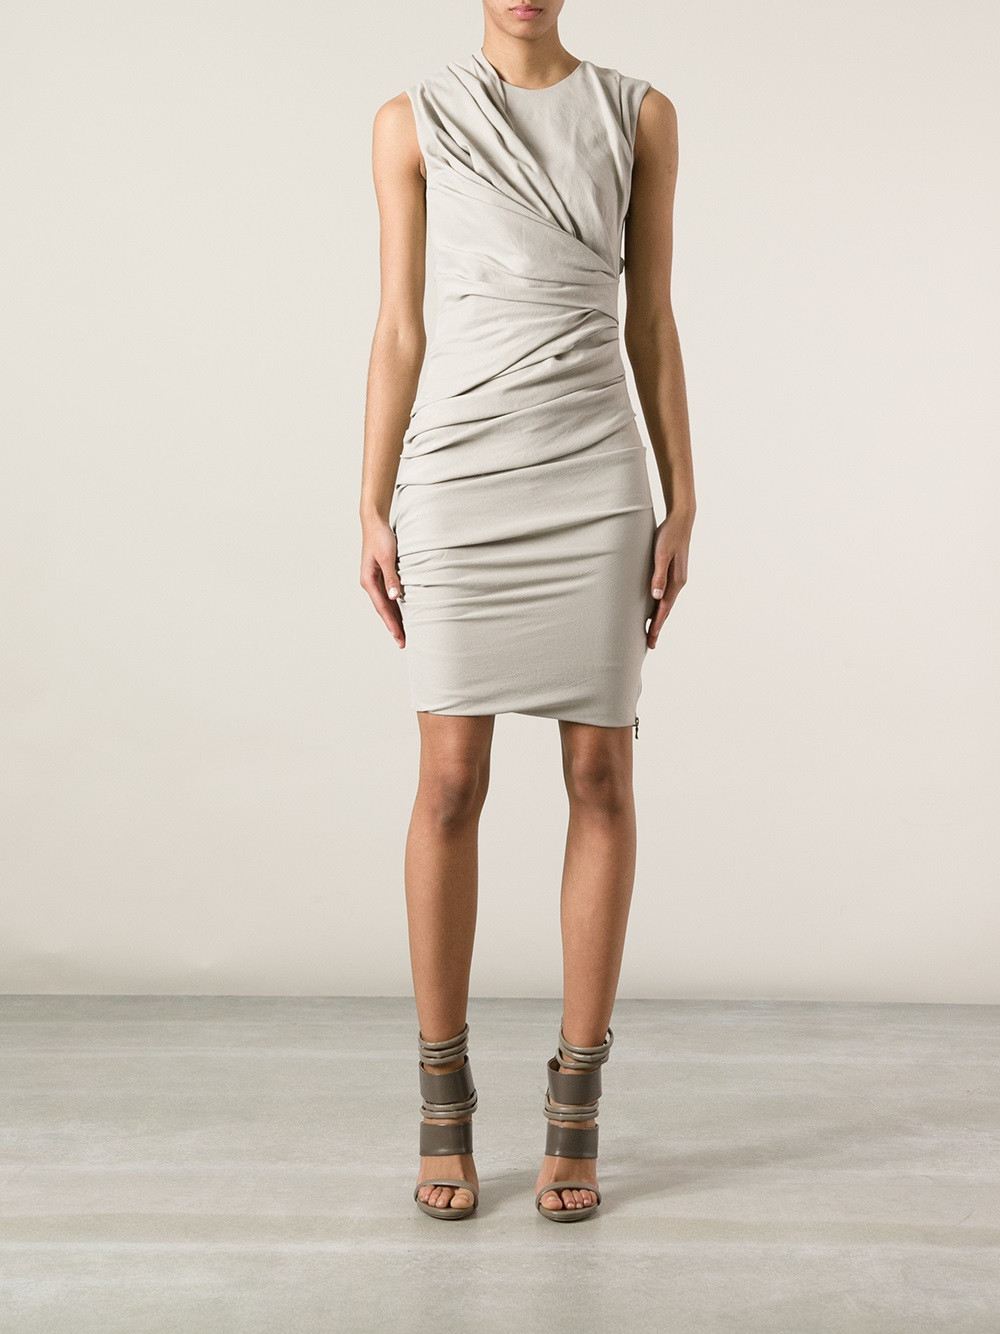 lanvin-beige-sleeveless-draped-dress-product-1-16572016-1-119207587-normal